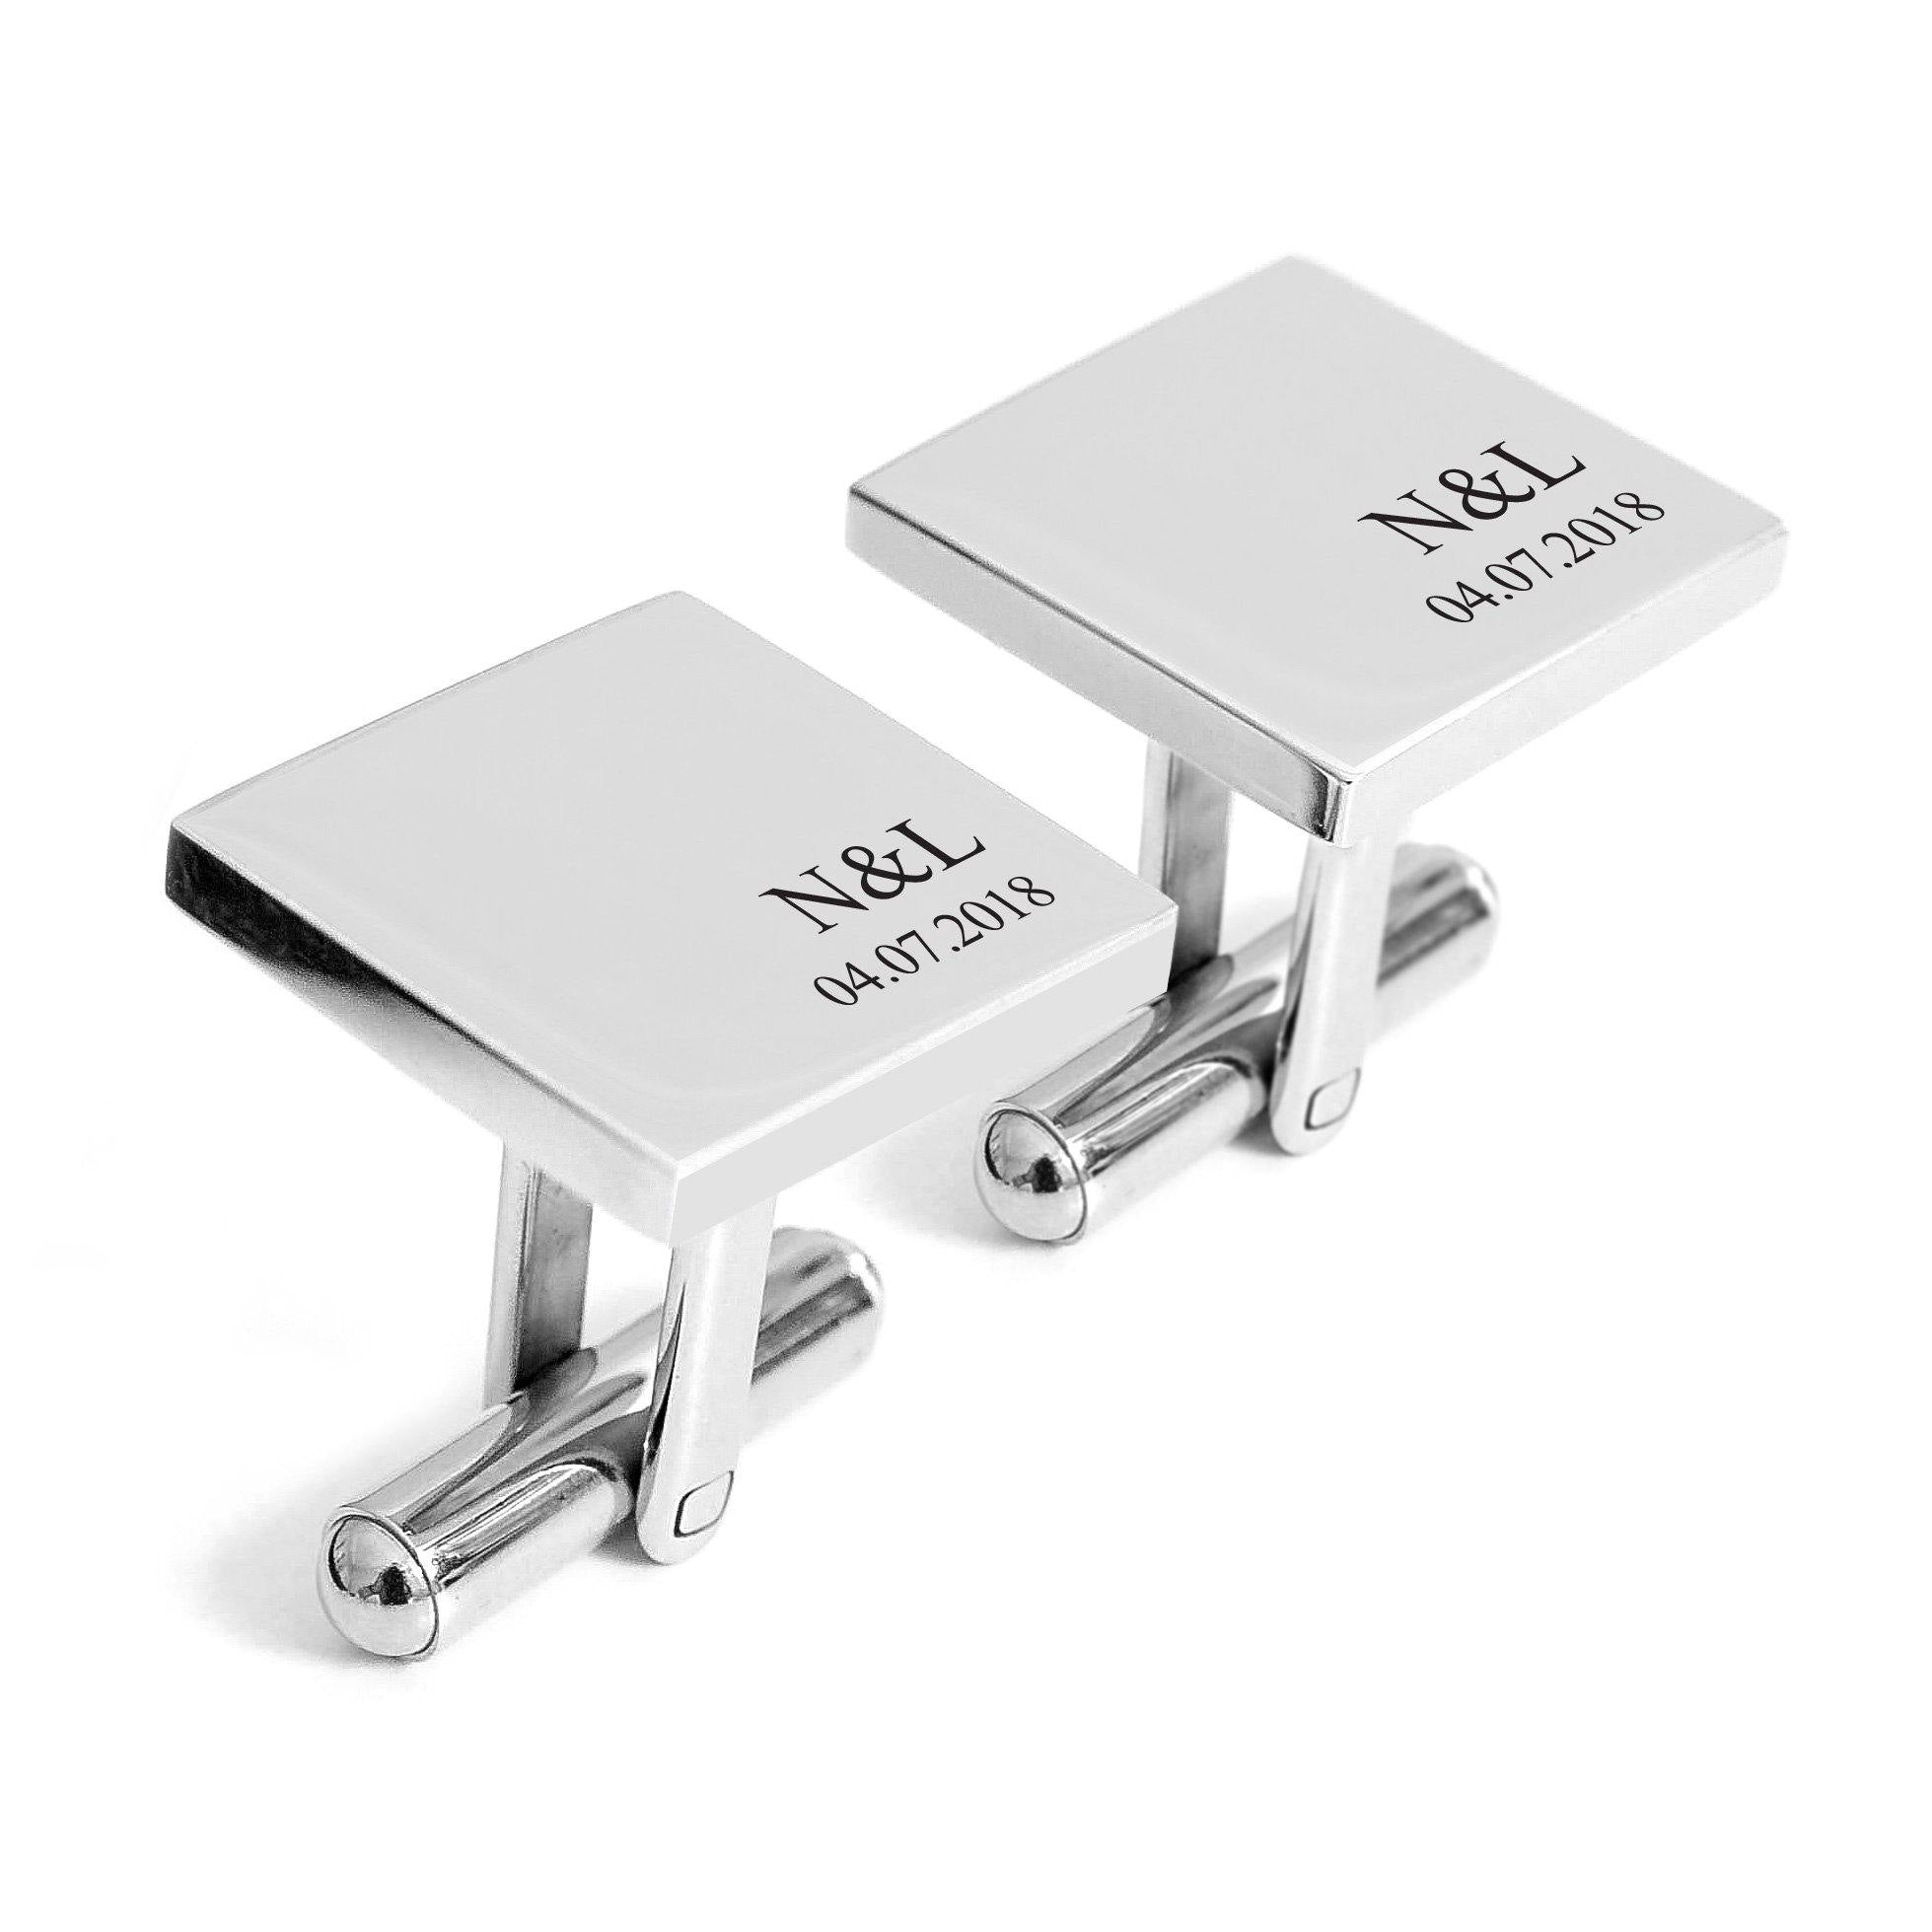 Groom wedding cufflinks with date – Alexa Lane